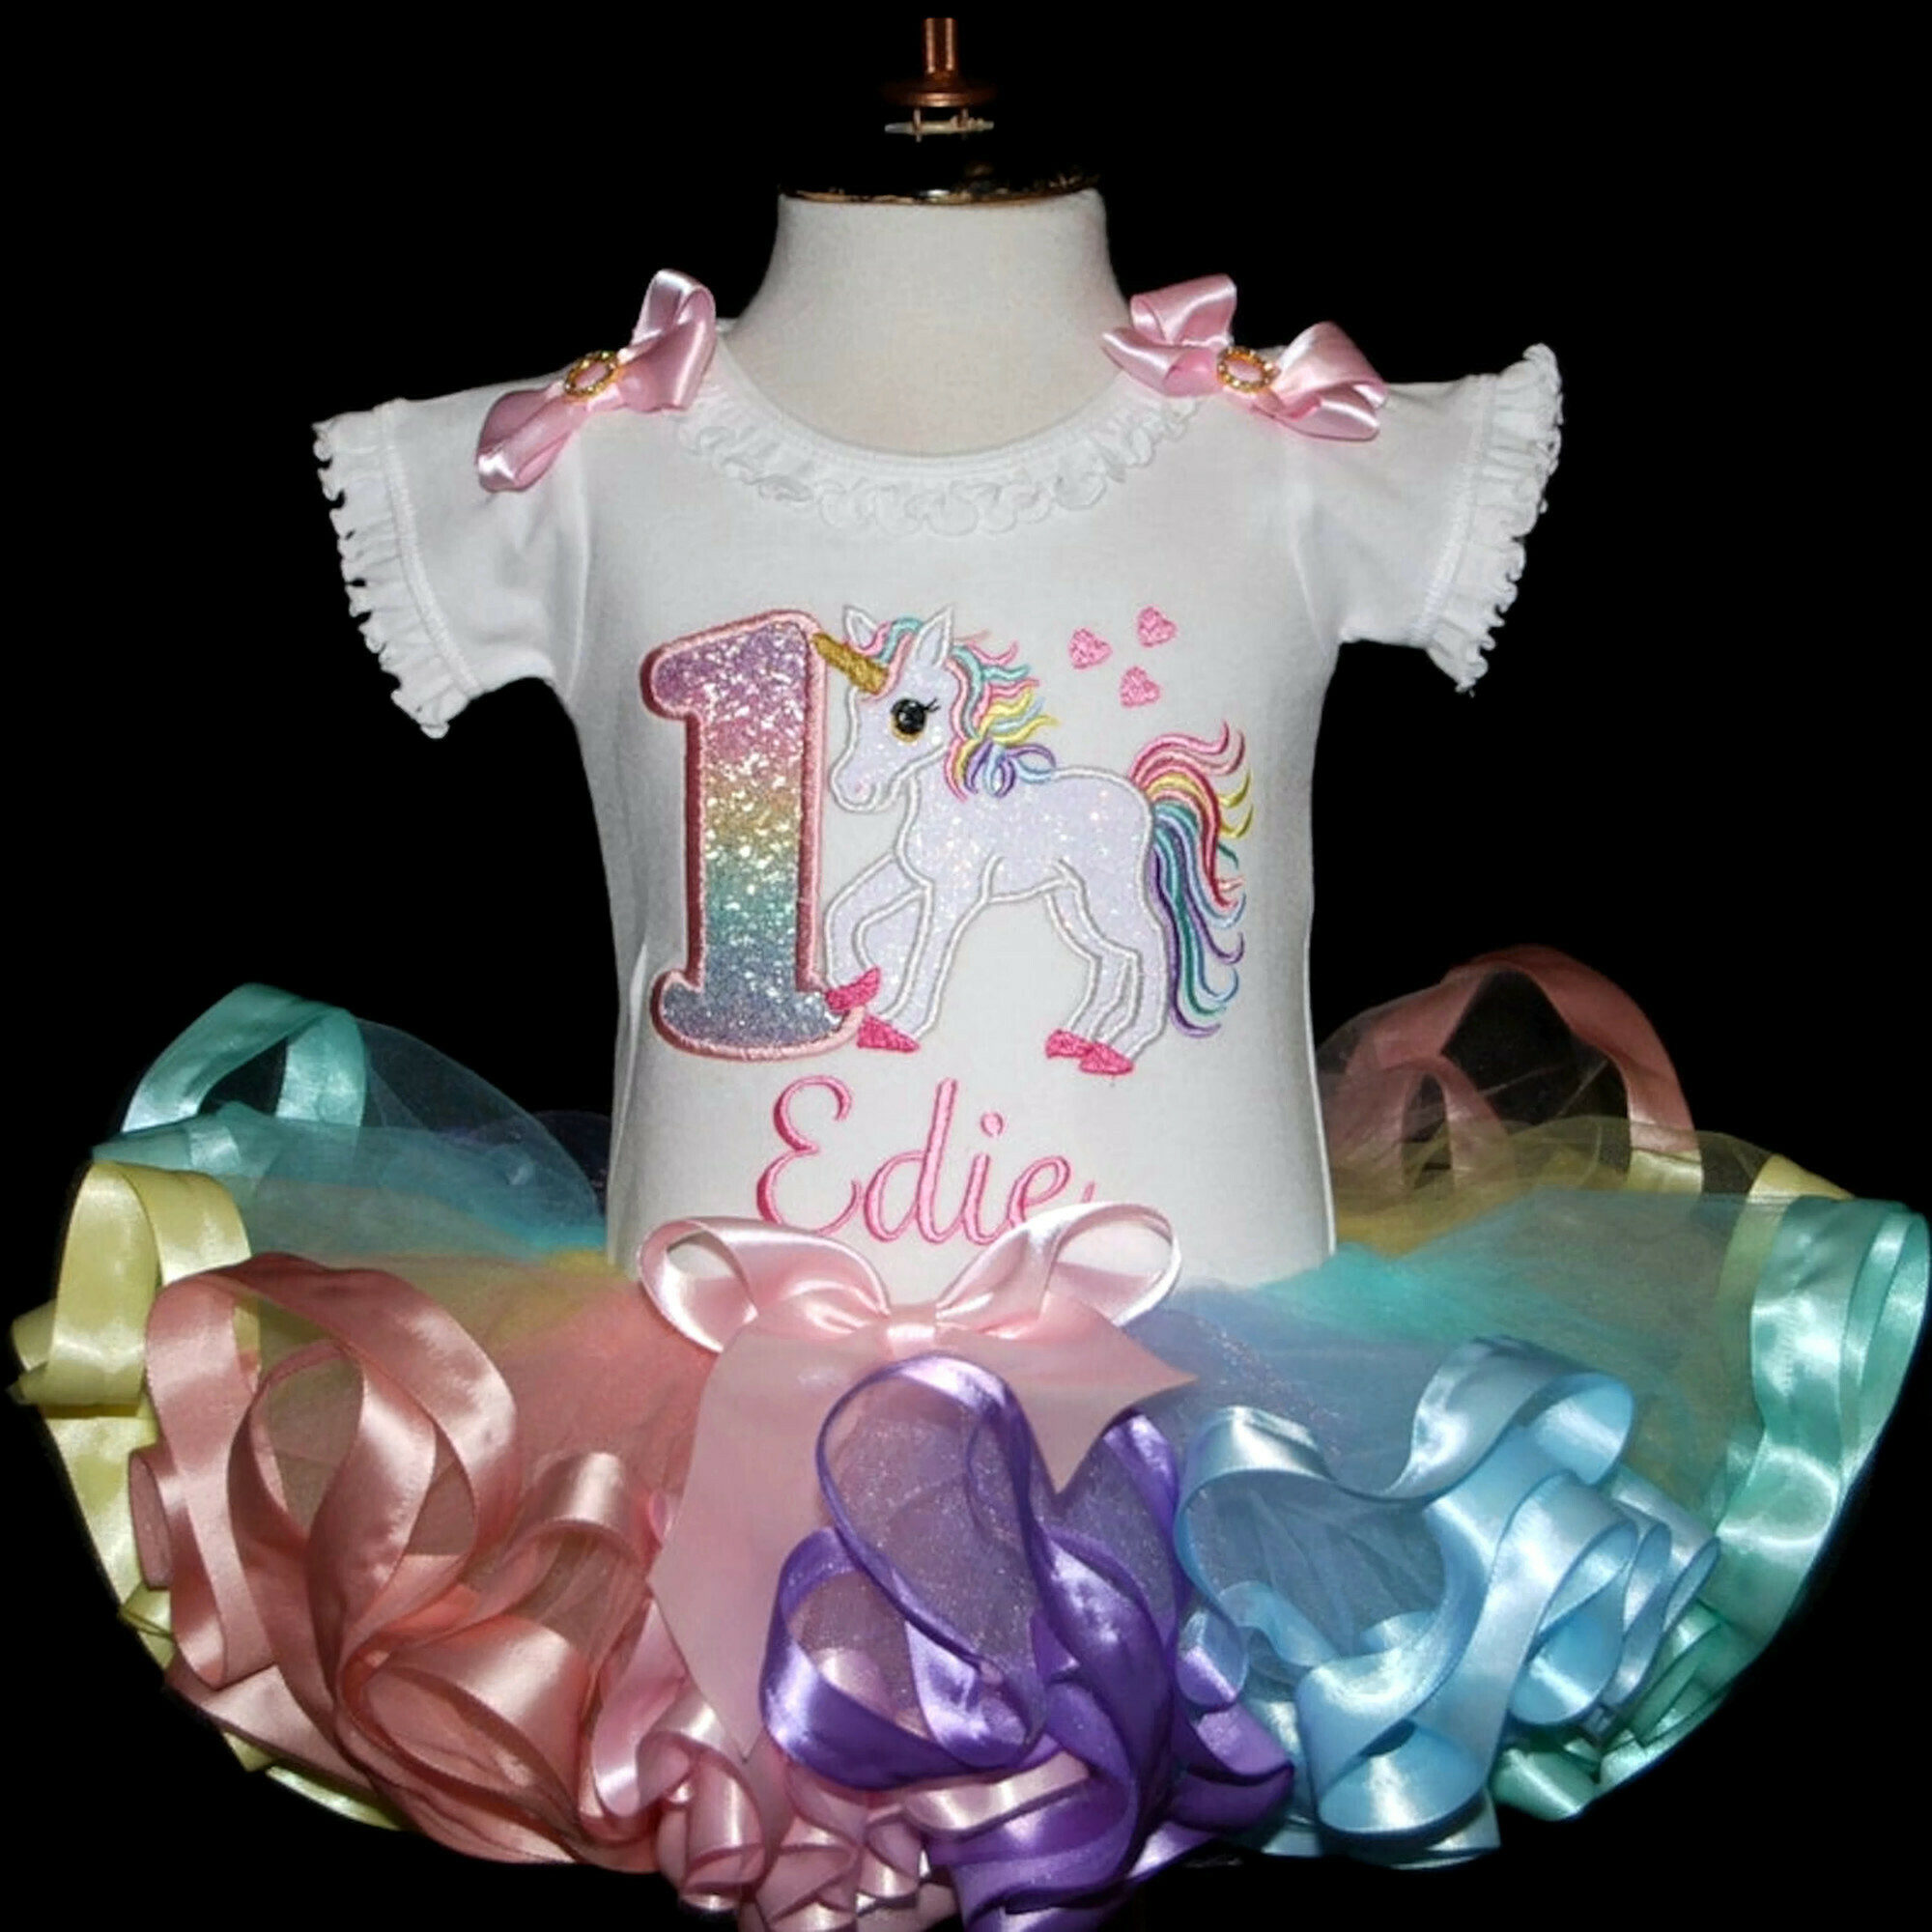 unicorn 1st birthday outfit-first birthday outfit girl-smash cake outfit